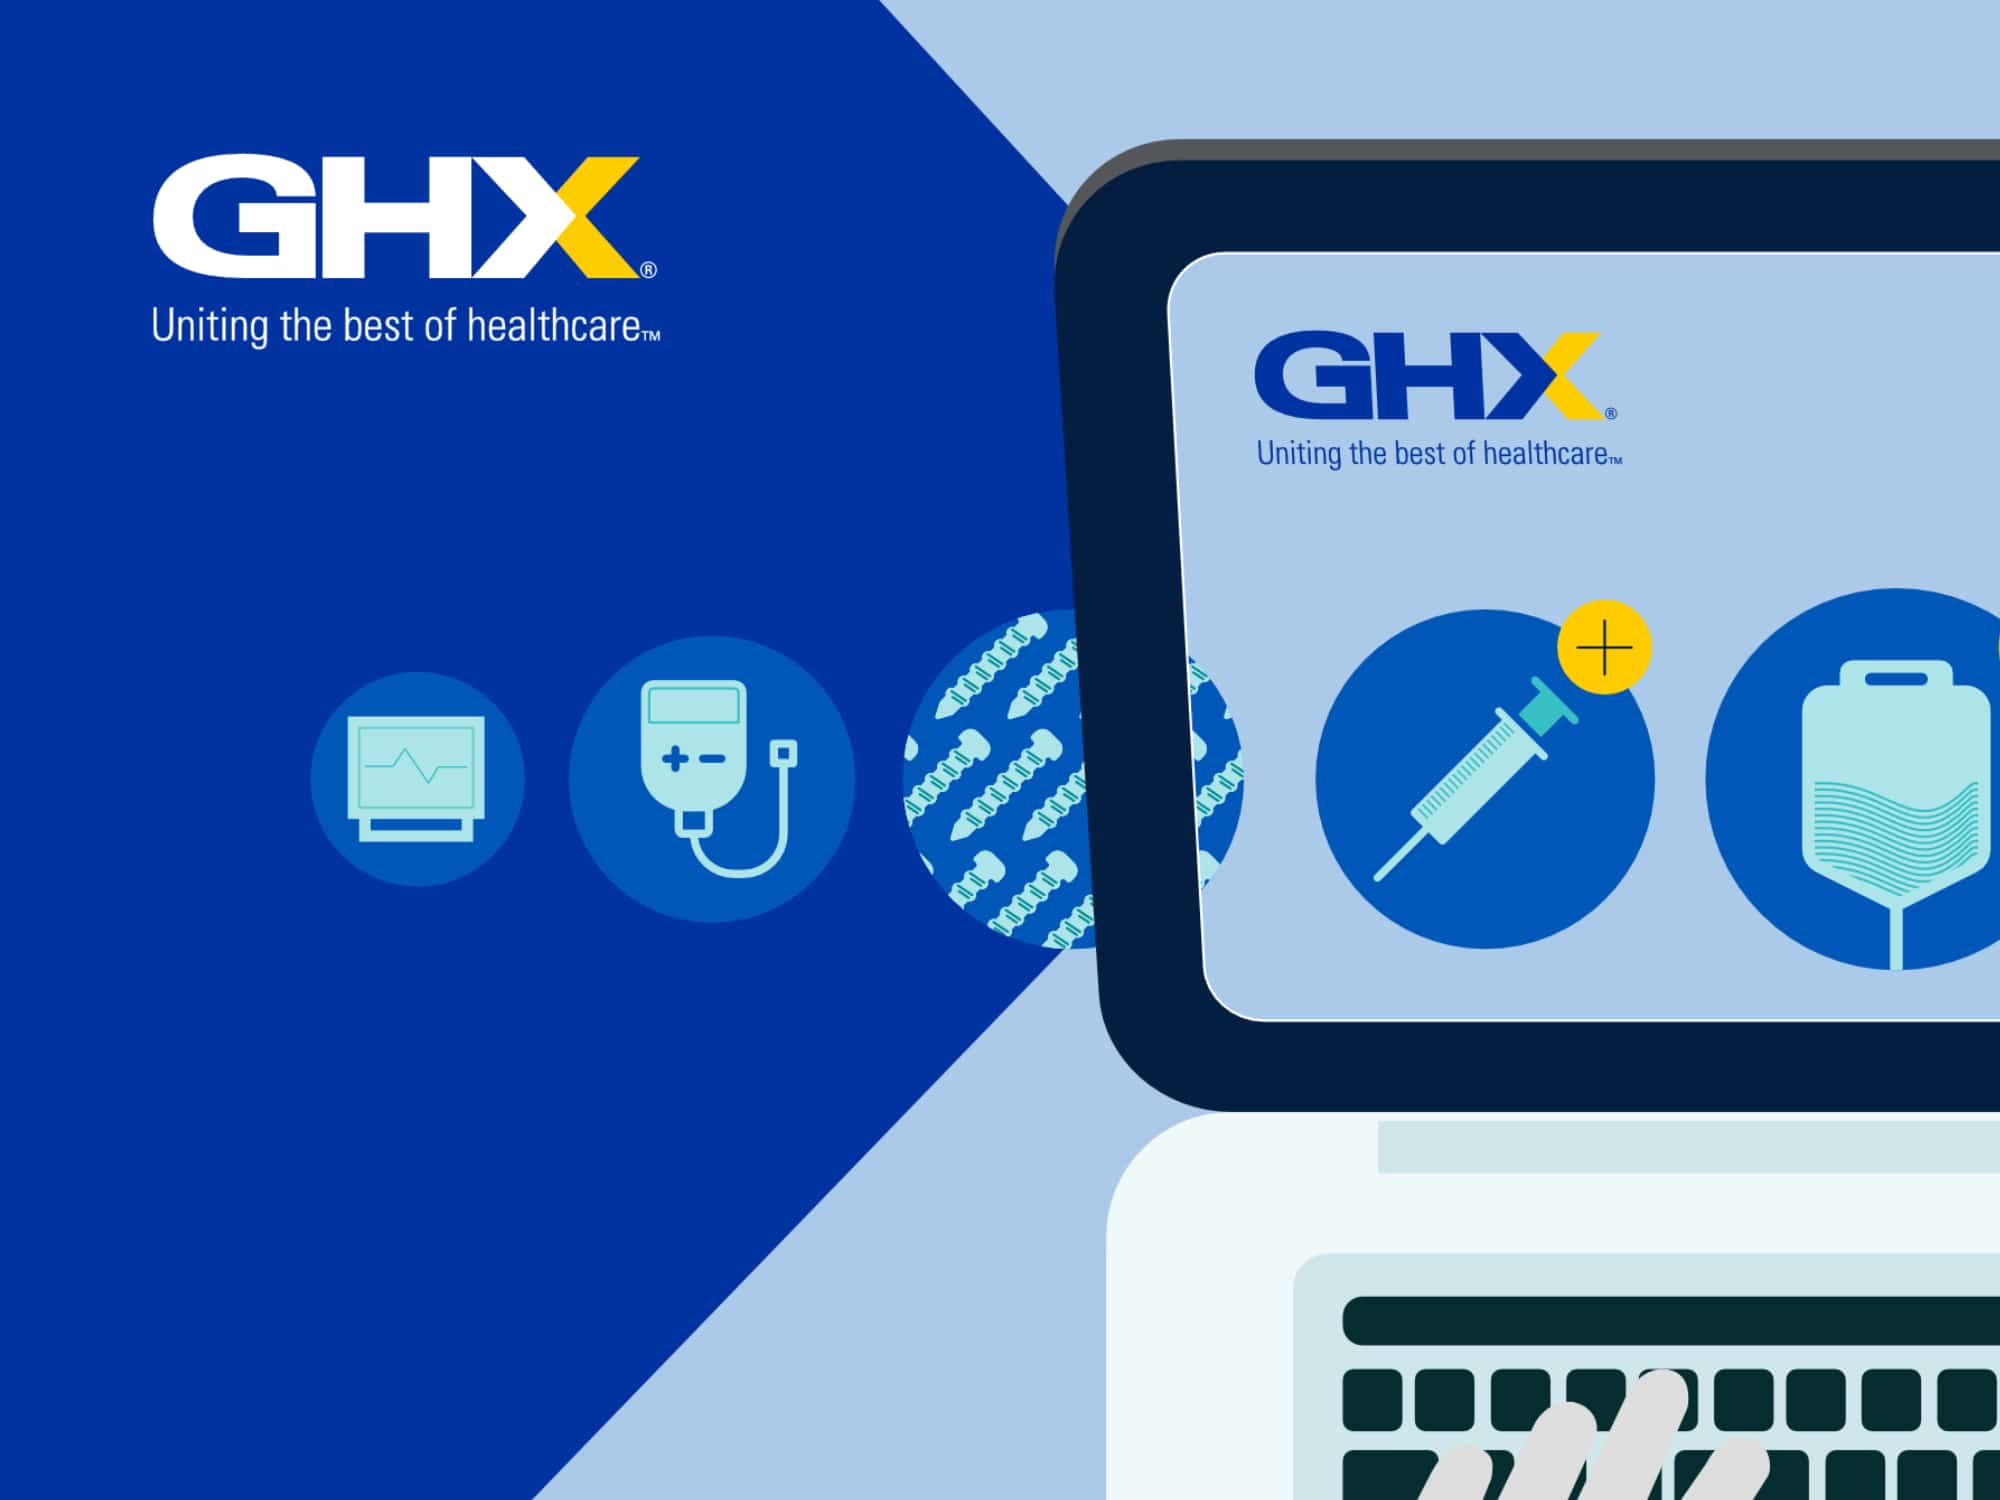 GHX - Healthcare Supply Chain Management design